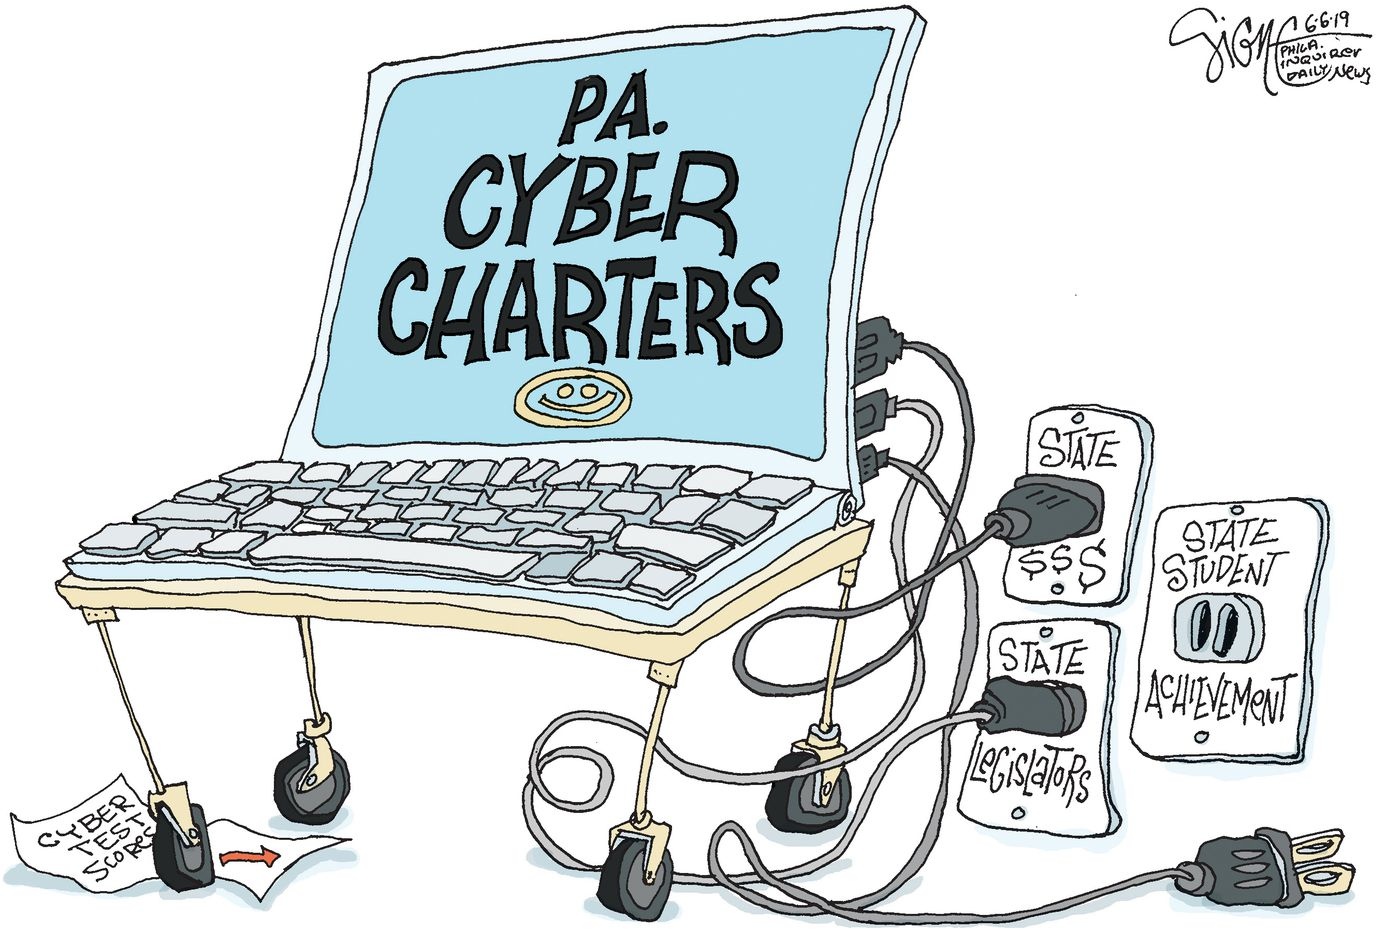 Political Cartoon: Pa. cyber schools got their report card